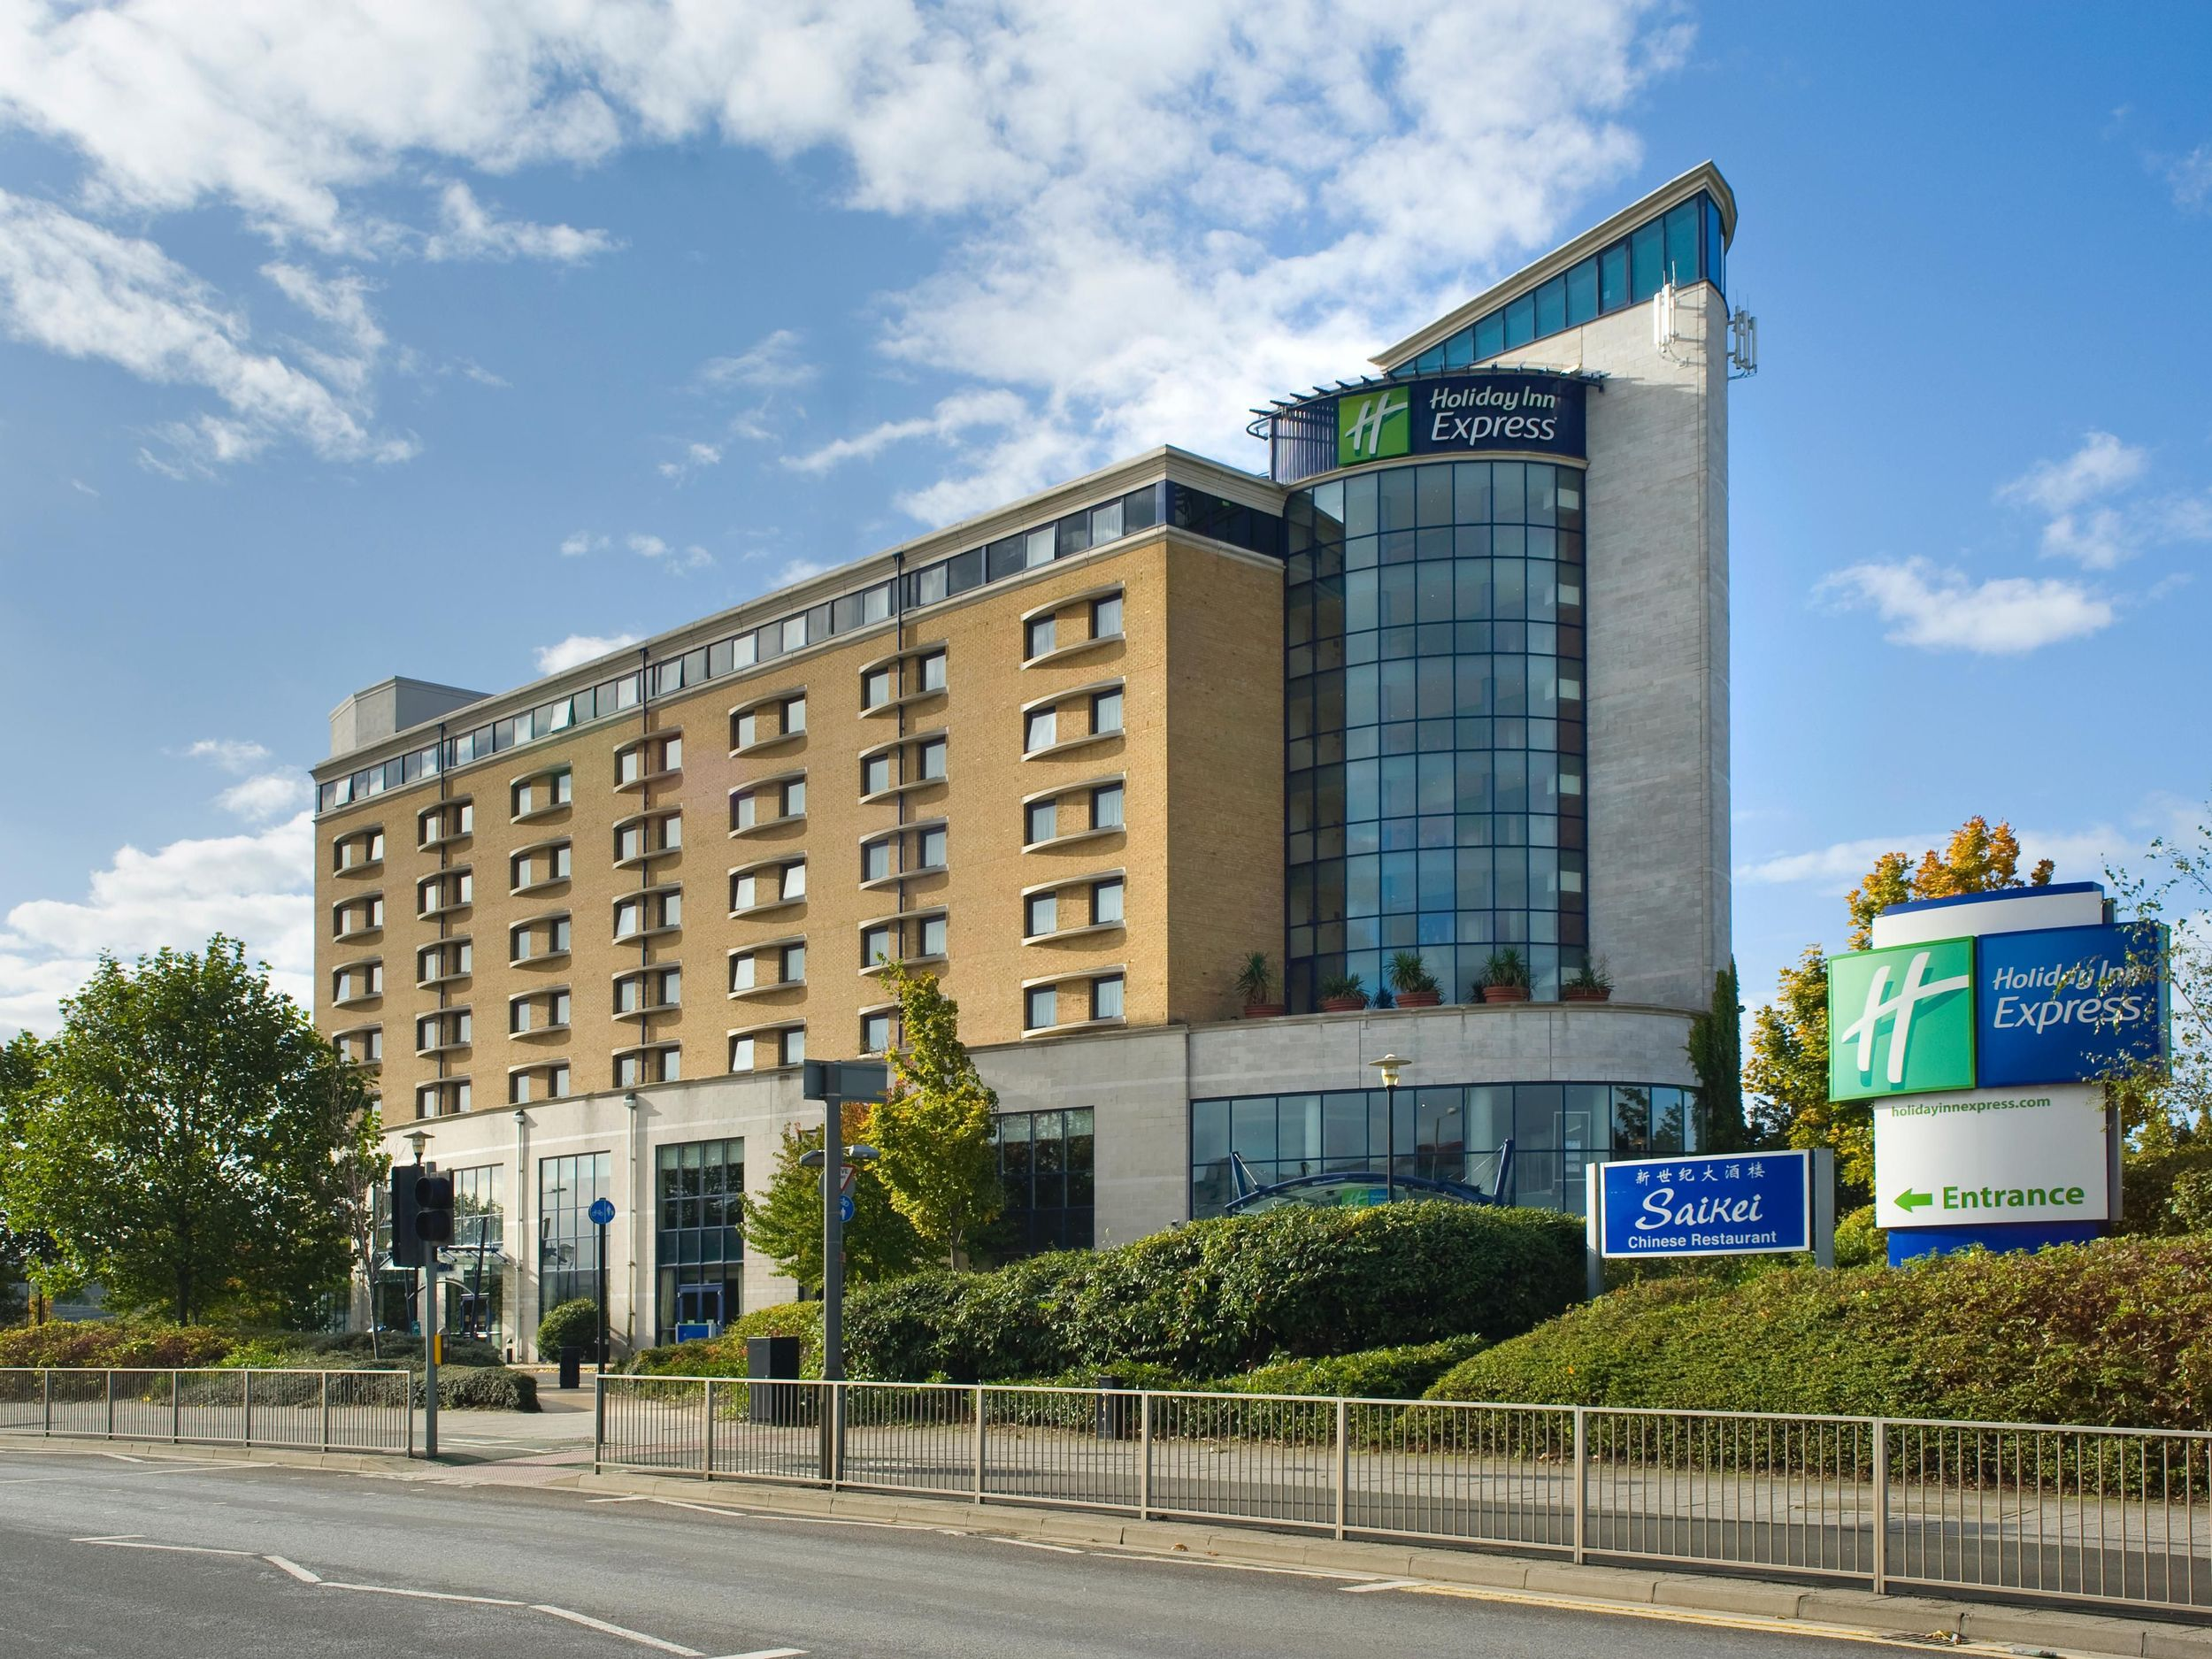 Holiday Inn Express (Greenwich) on Bugsby's Way [IHG]